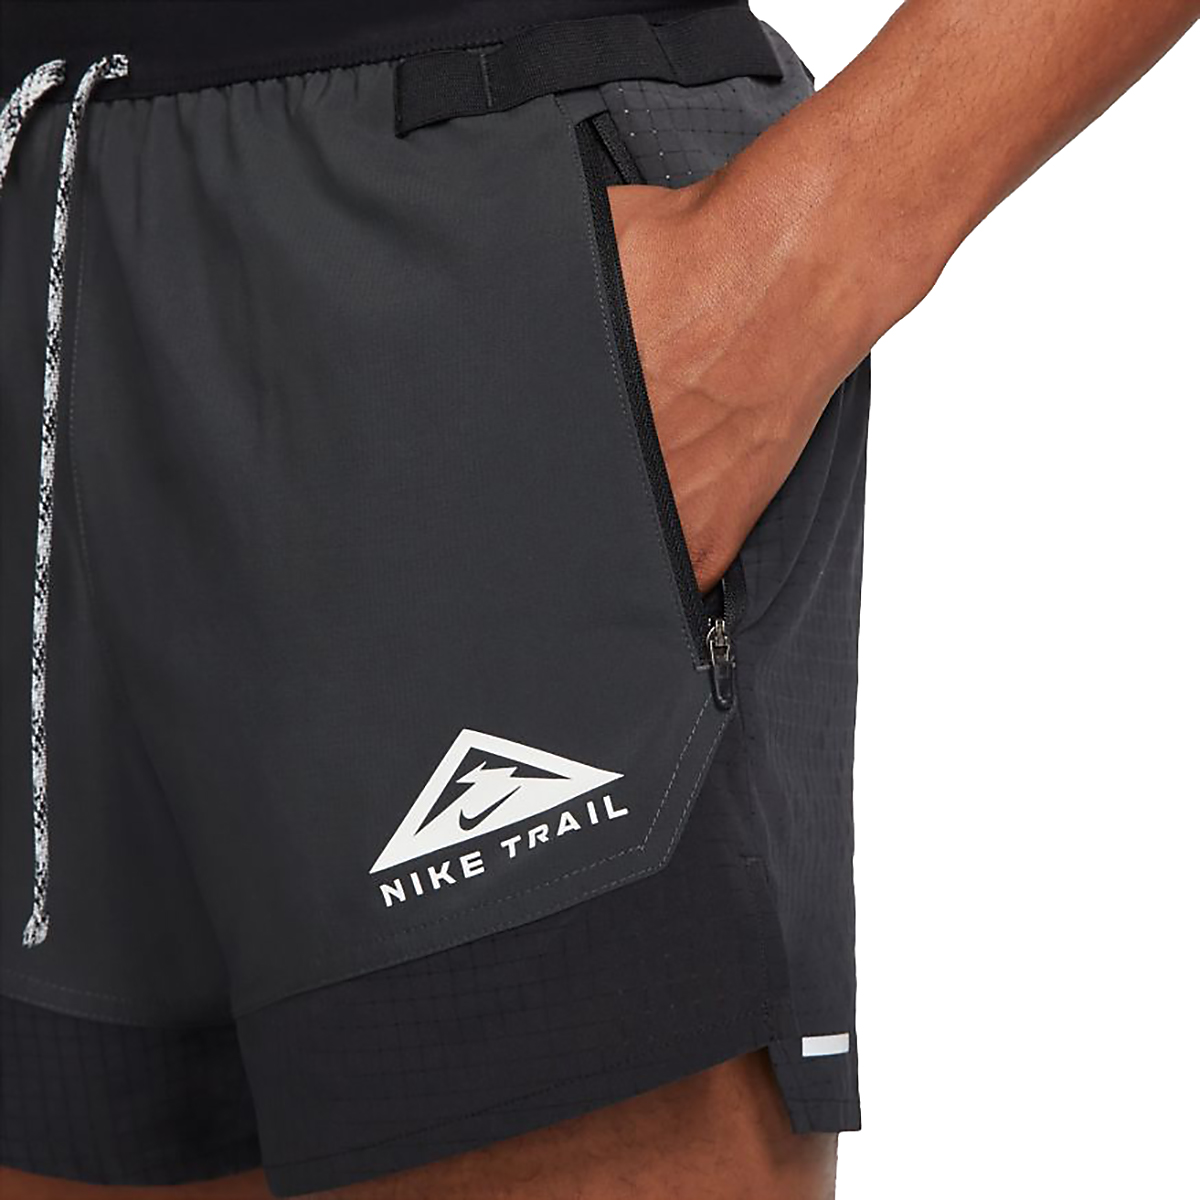 Men's Nike Dri-FIT Flex Stride Trail Shorts - Color: Black/Dark Smoke Grey/White - Size: S, Black/Dark Smoke Grey/White, large, image 3